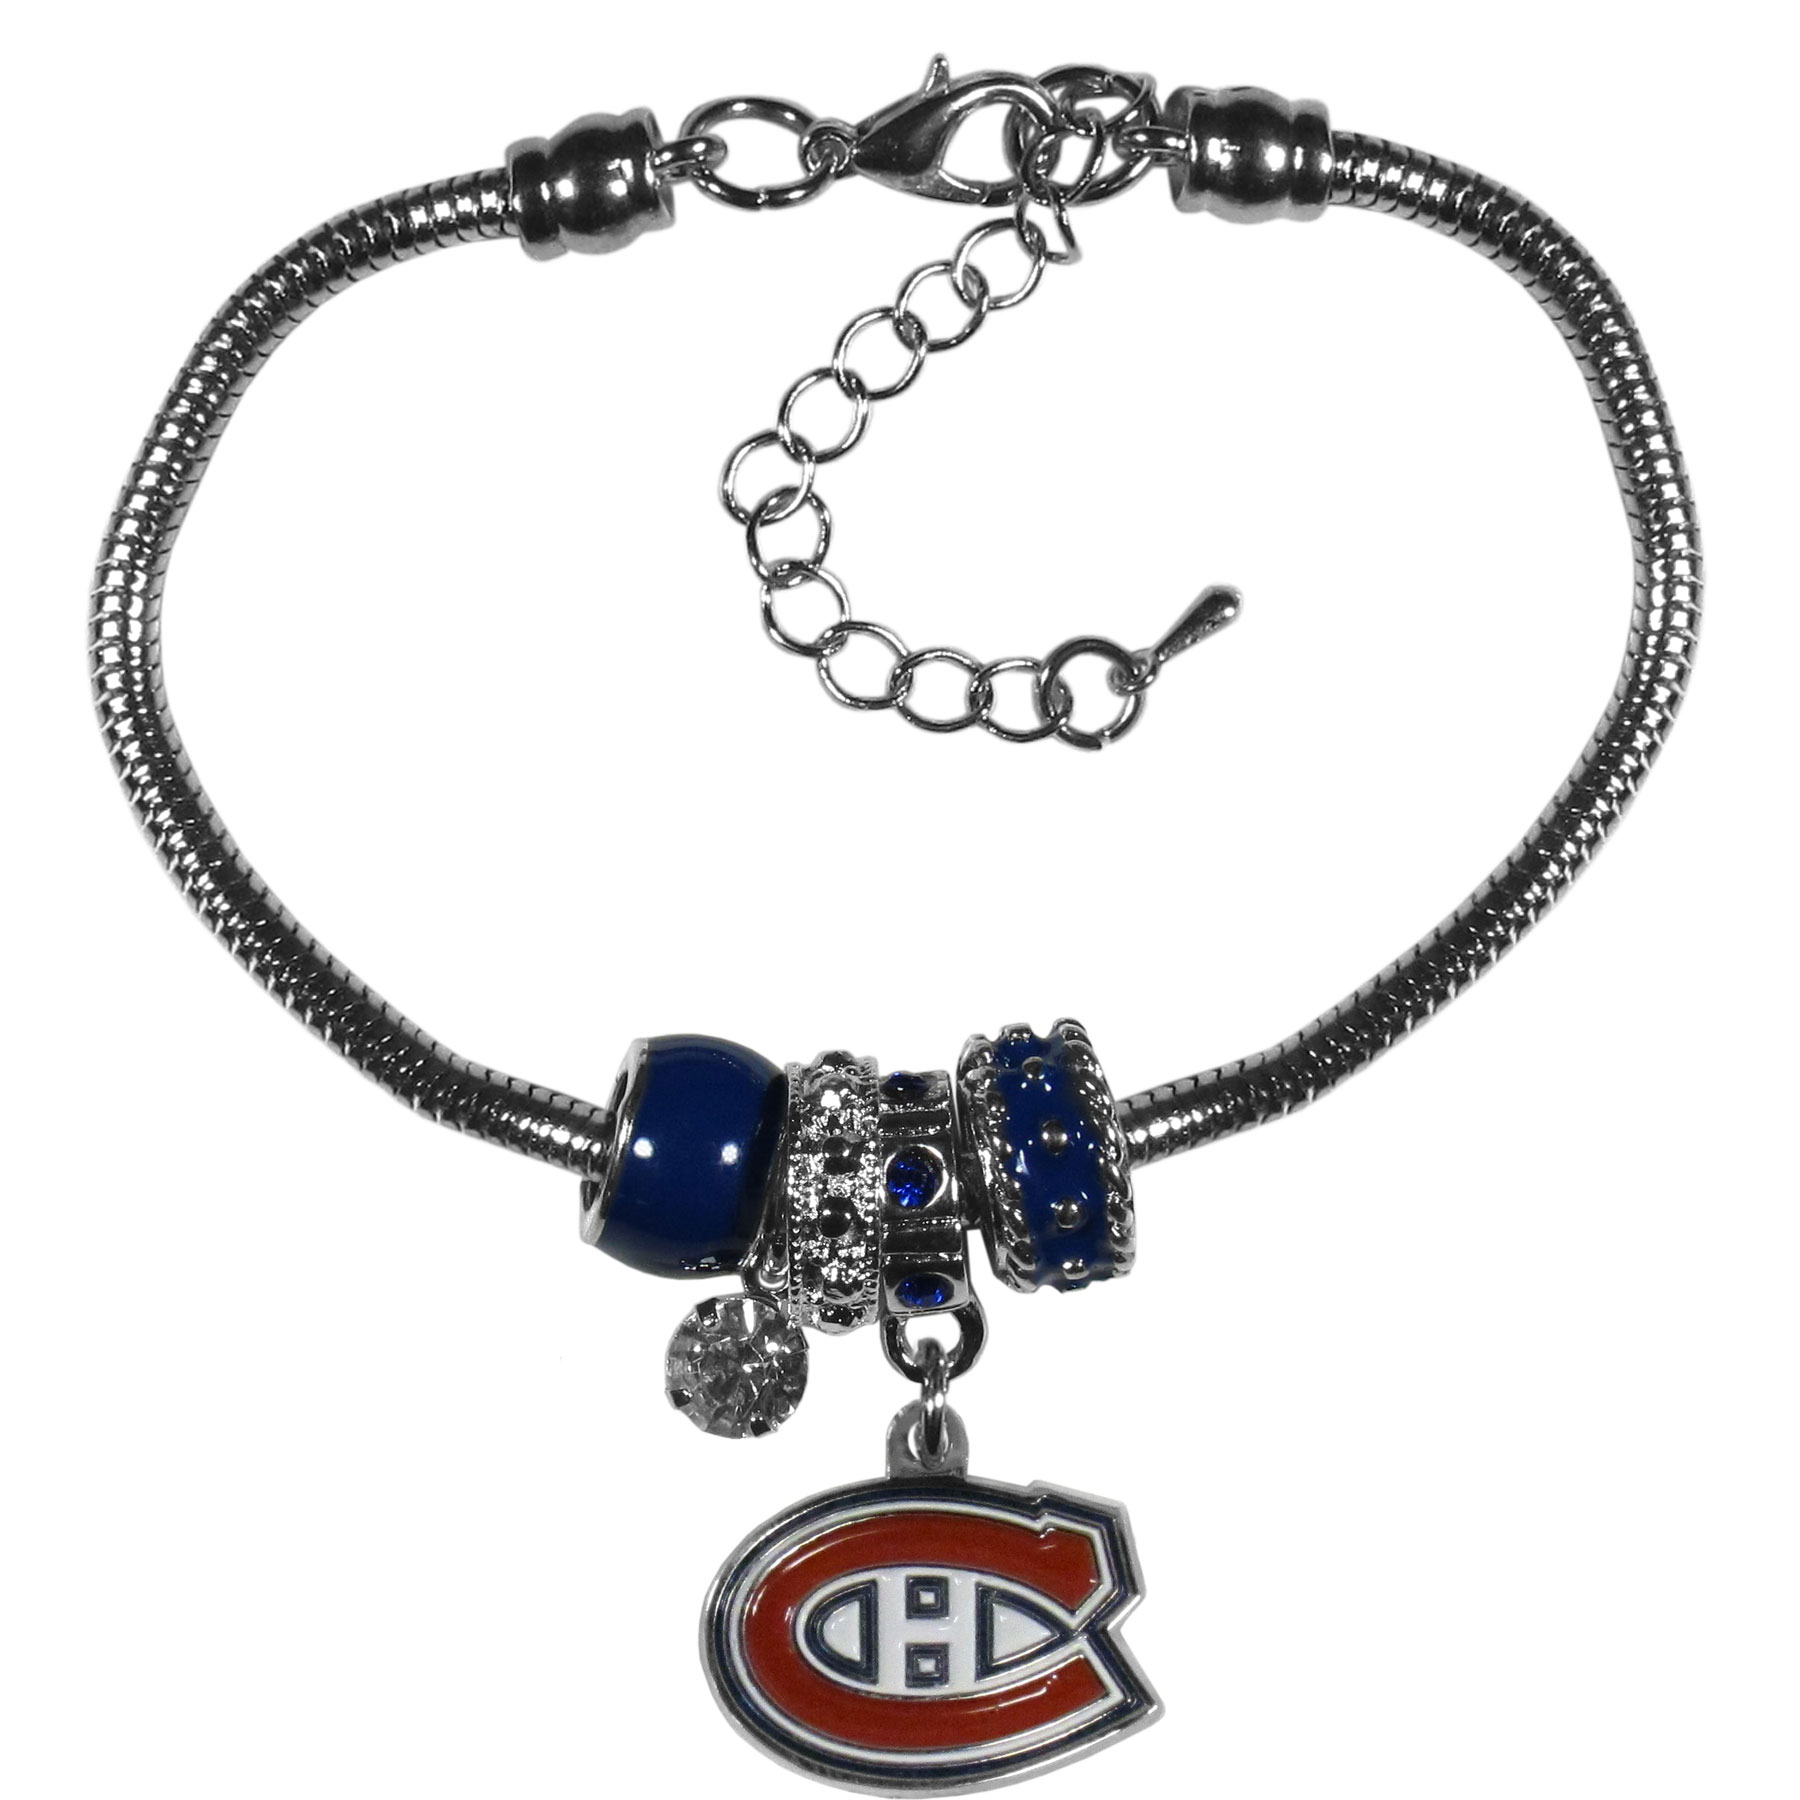 Montreal Canadiens® Euro Bead Bracelet - We have combined the wildly popular Euro style beads with your favorite team to create our  Montreal Canadiens® bead bracelet. The 7.5 inch snake chain with 2 inch extender features 4 Euro beads with enameled team colors and rhinestone accents with a high polish, nickel free charm and rhinestone charm. Perfect way to show off your team pride.